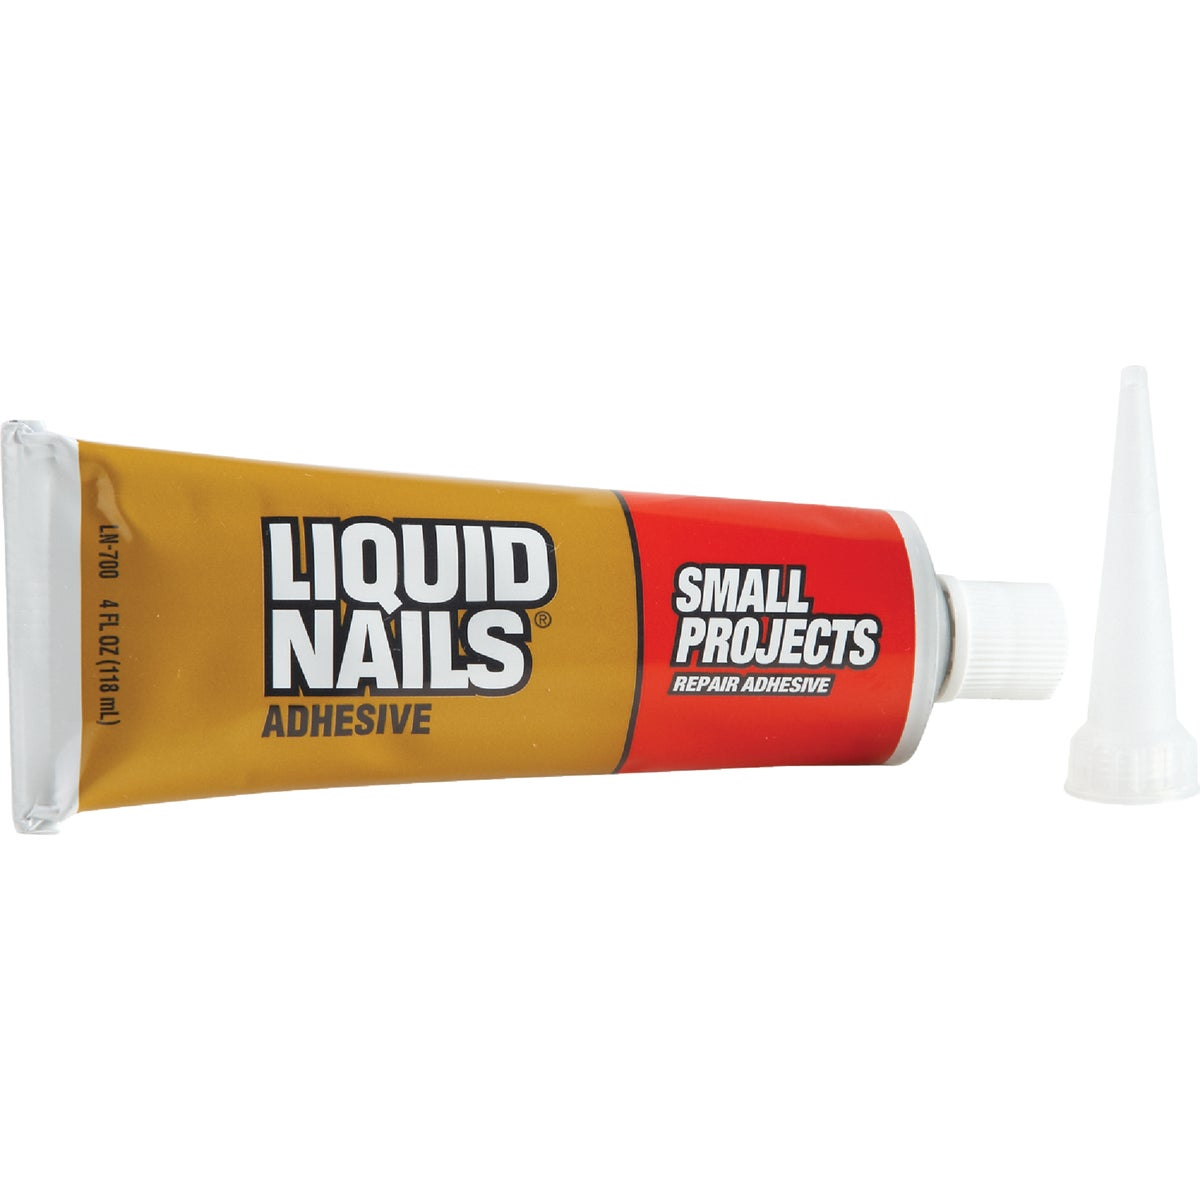 4OZ SM PRJ&RPR ADHESIVE - LN700 by Liquid Nails/akzonob